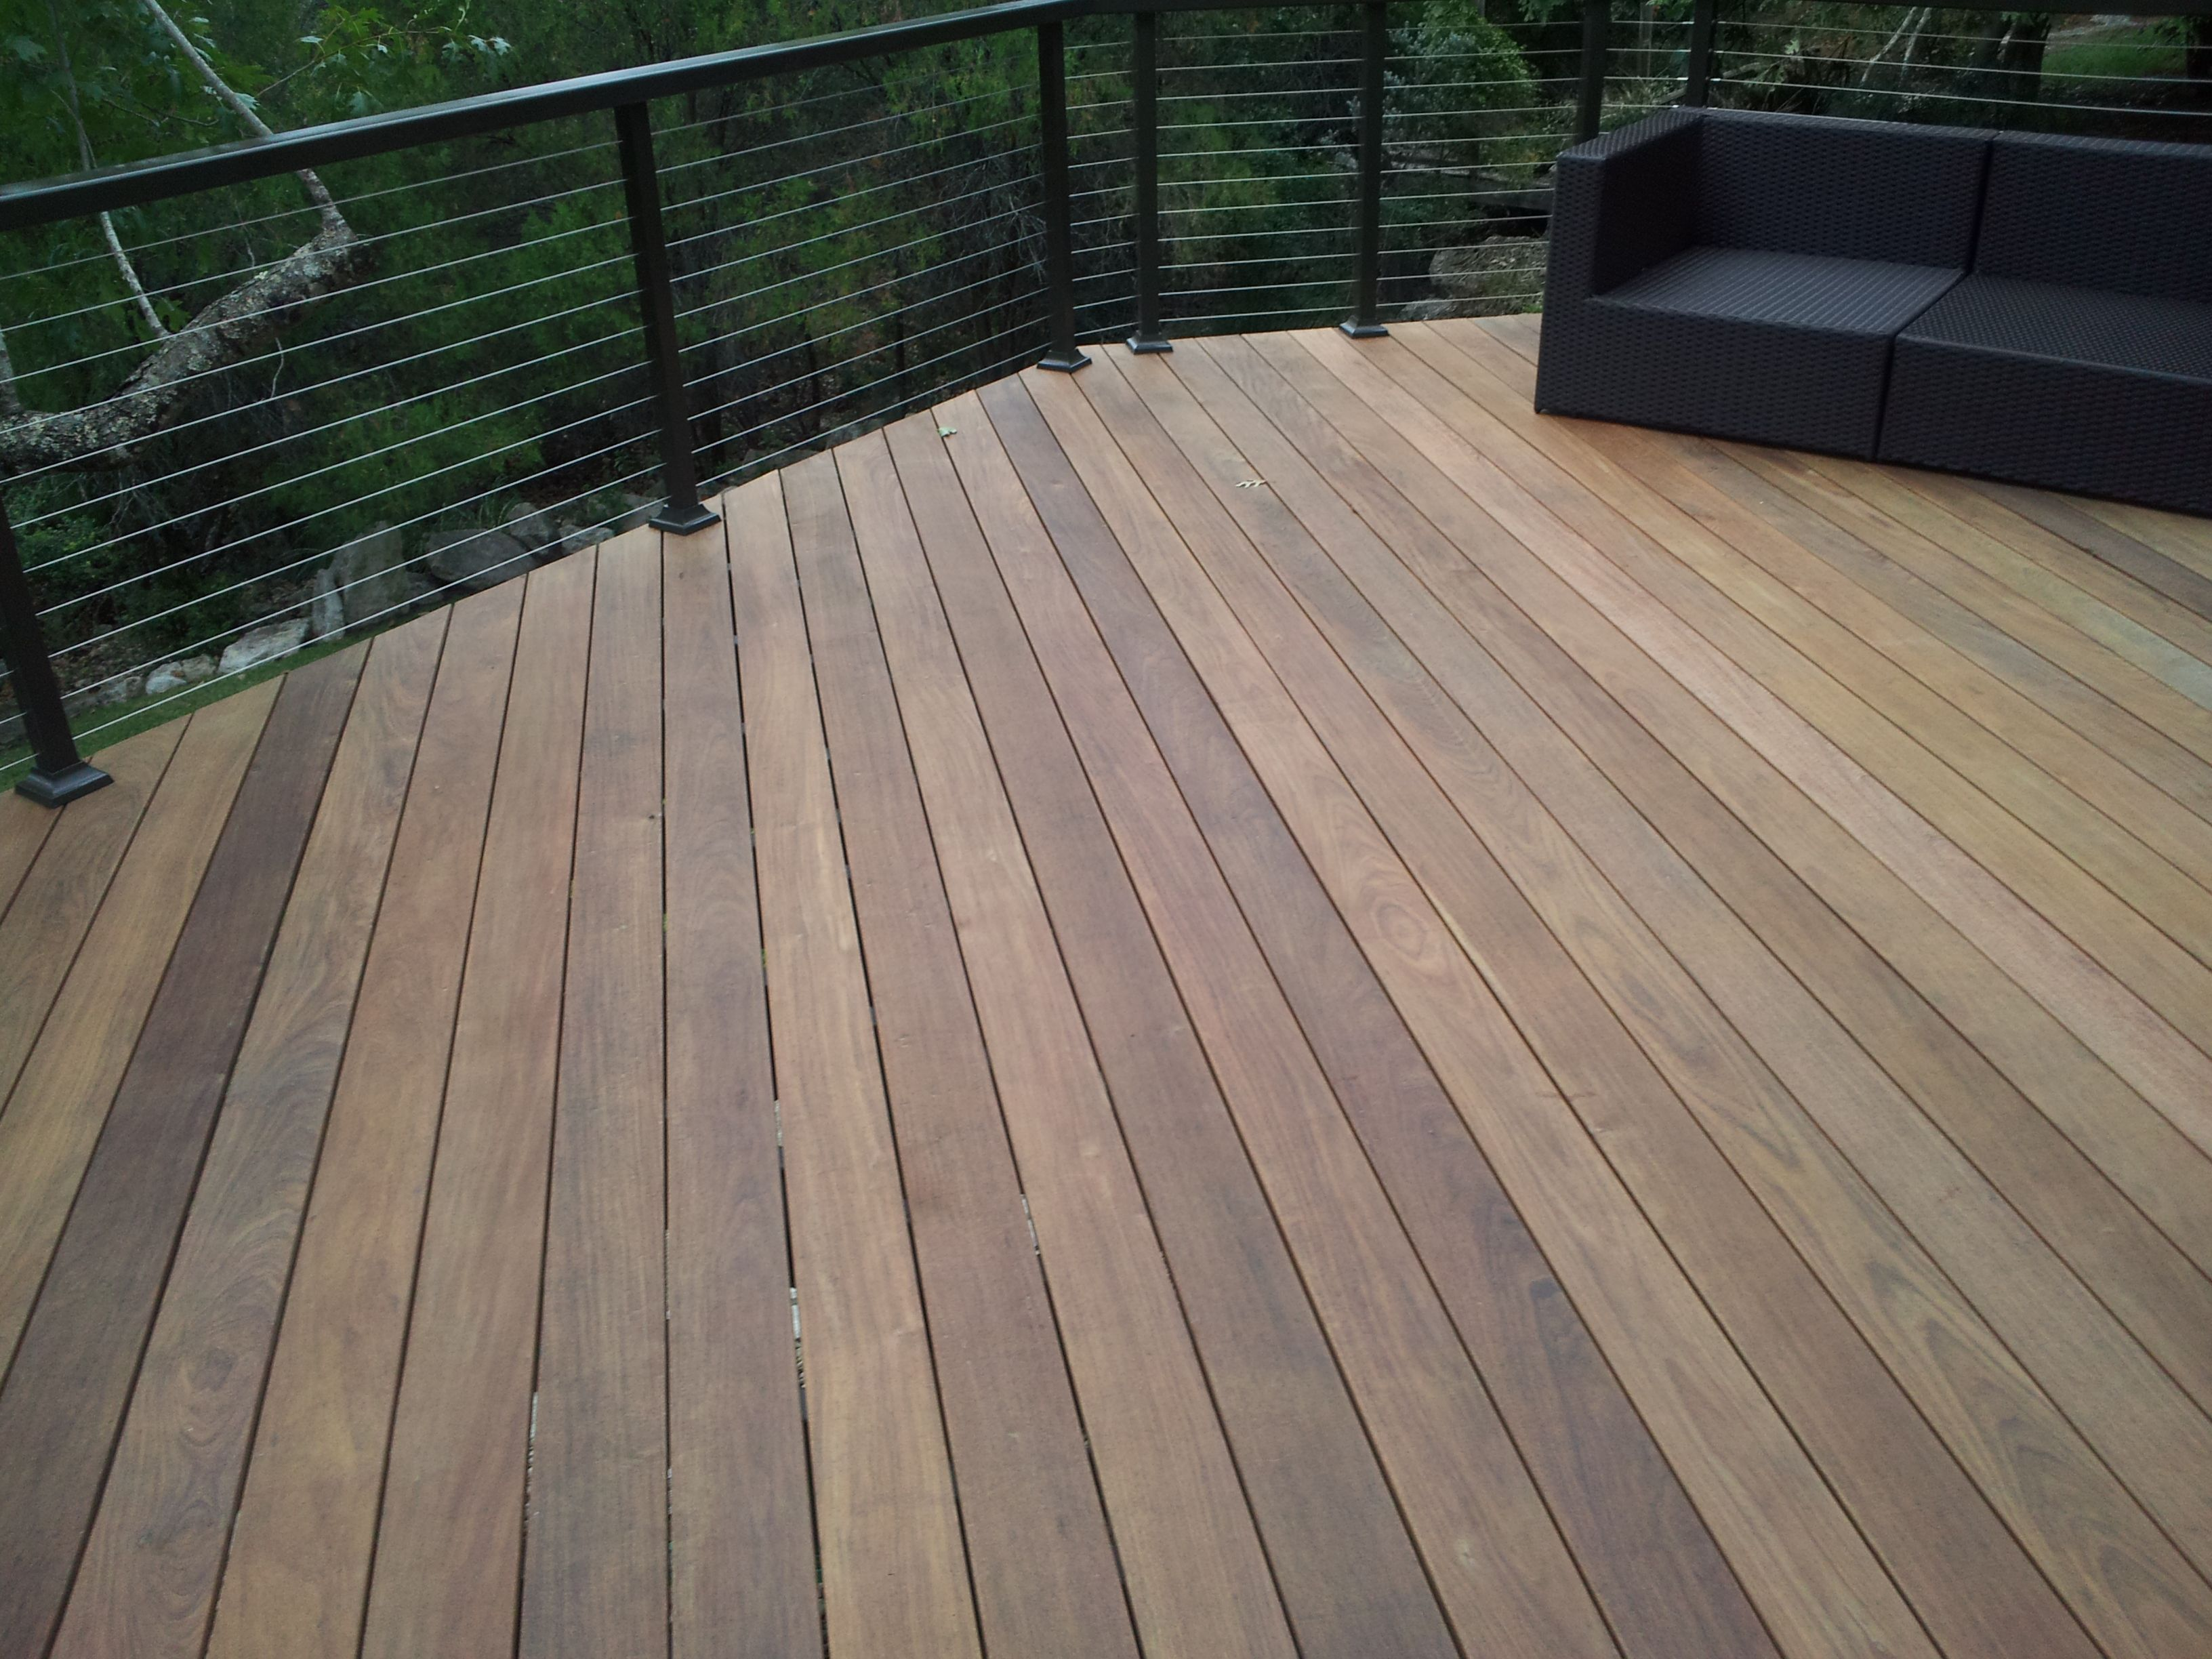 Ipe Hardwood Decking And Stainless Cable Railing